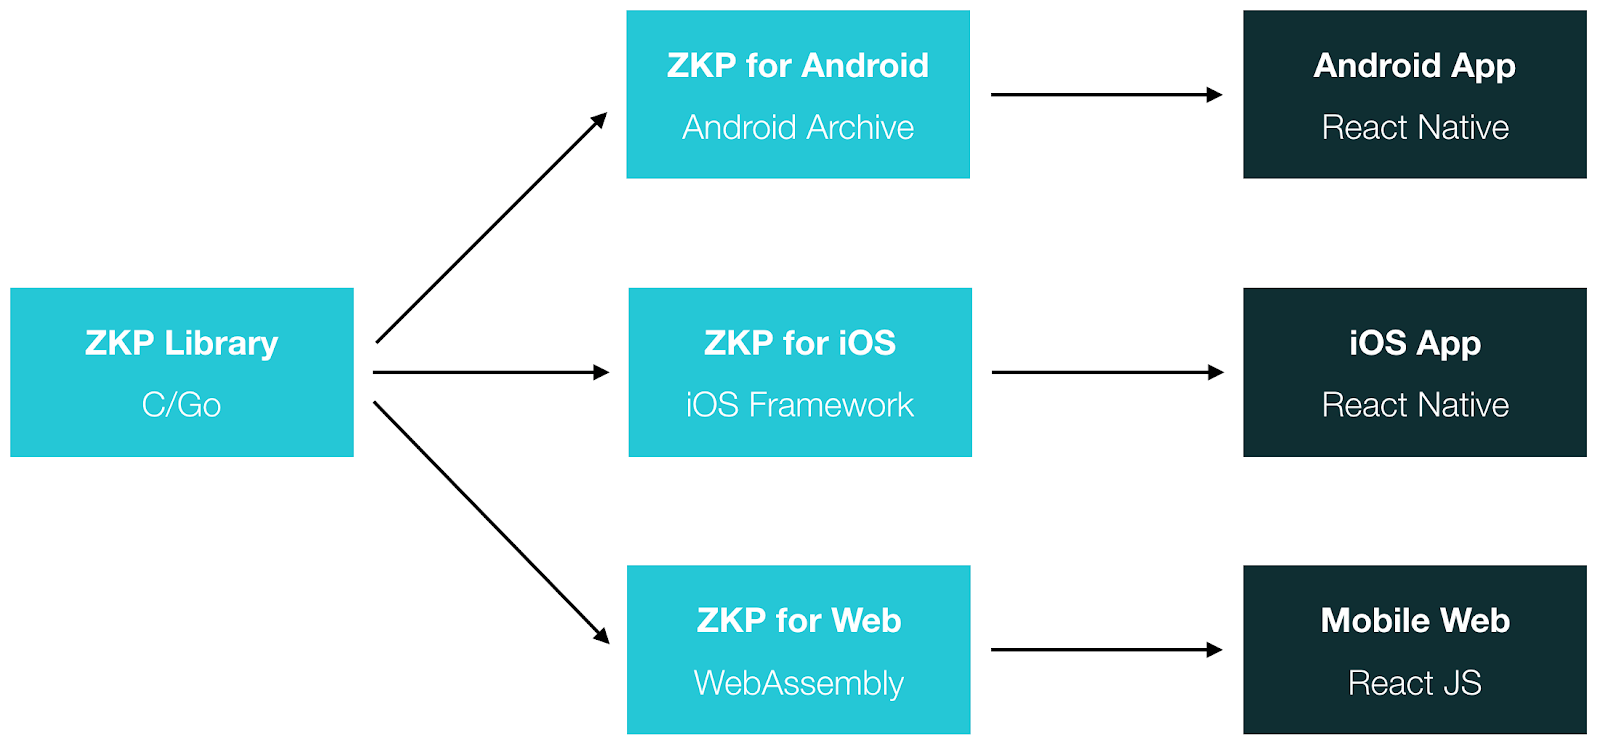 ZKP optimized for mobile